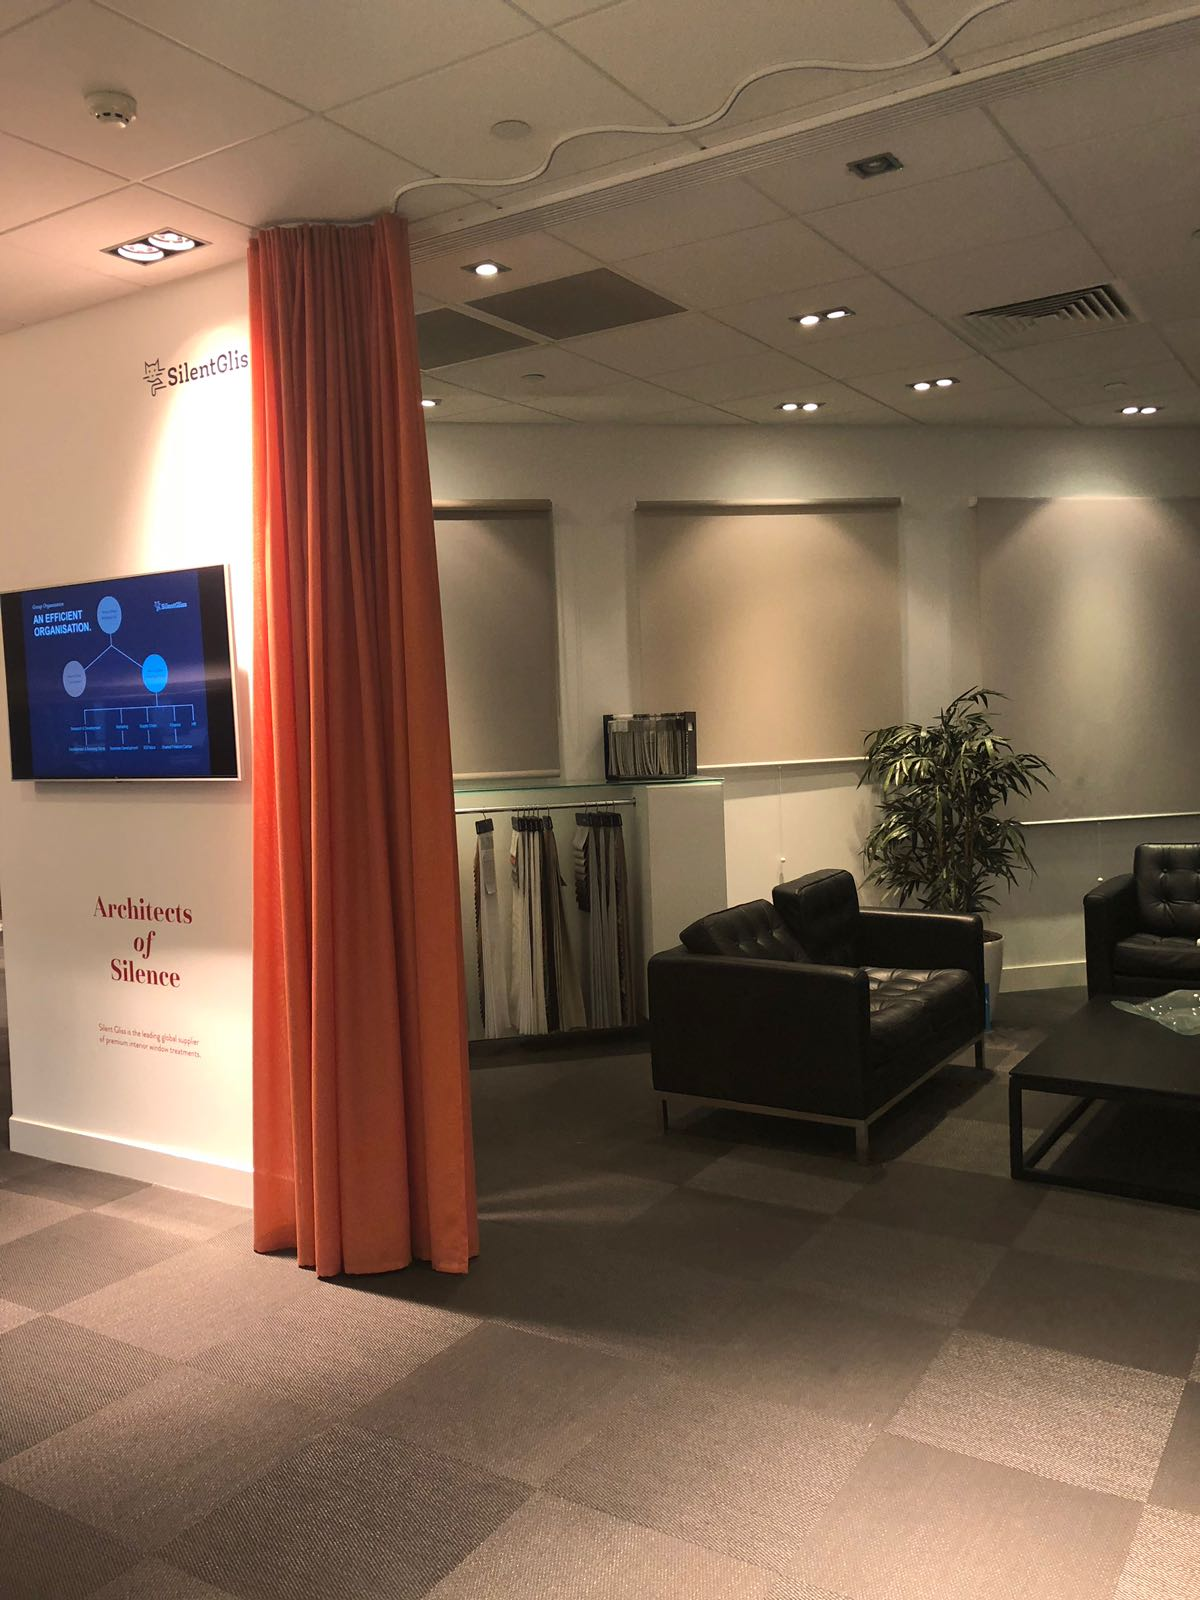 Silent Gliss Business Centre London - Waiting room